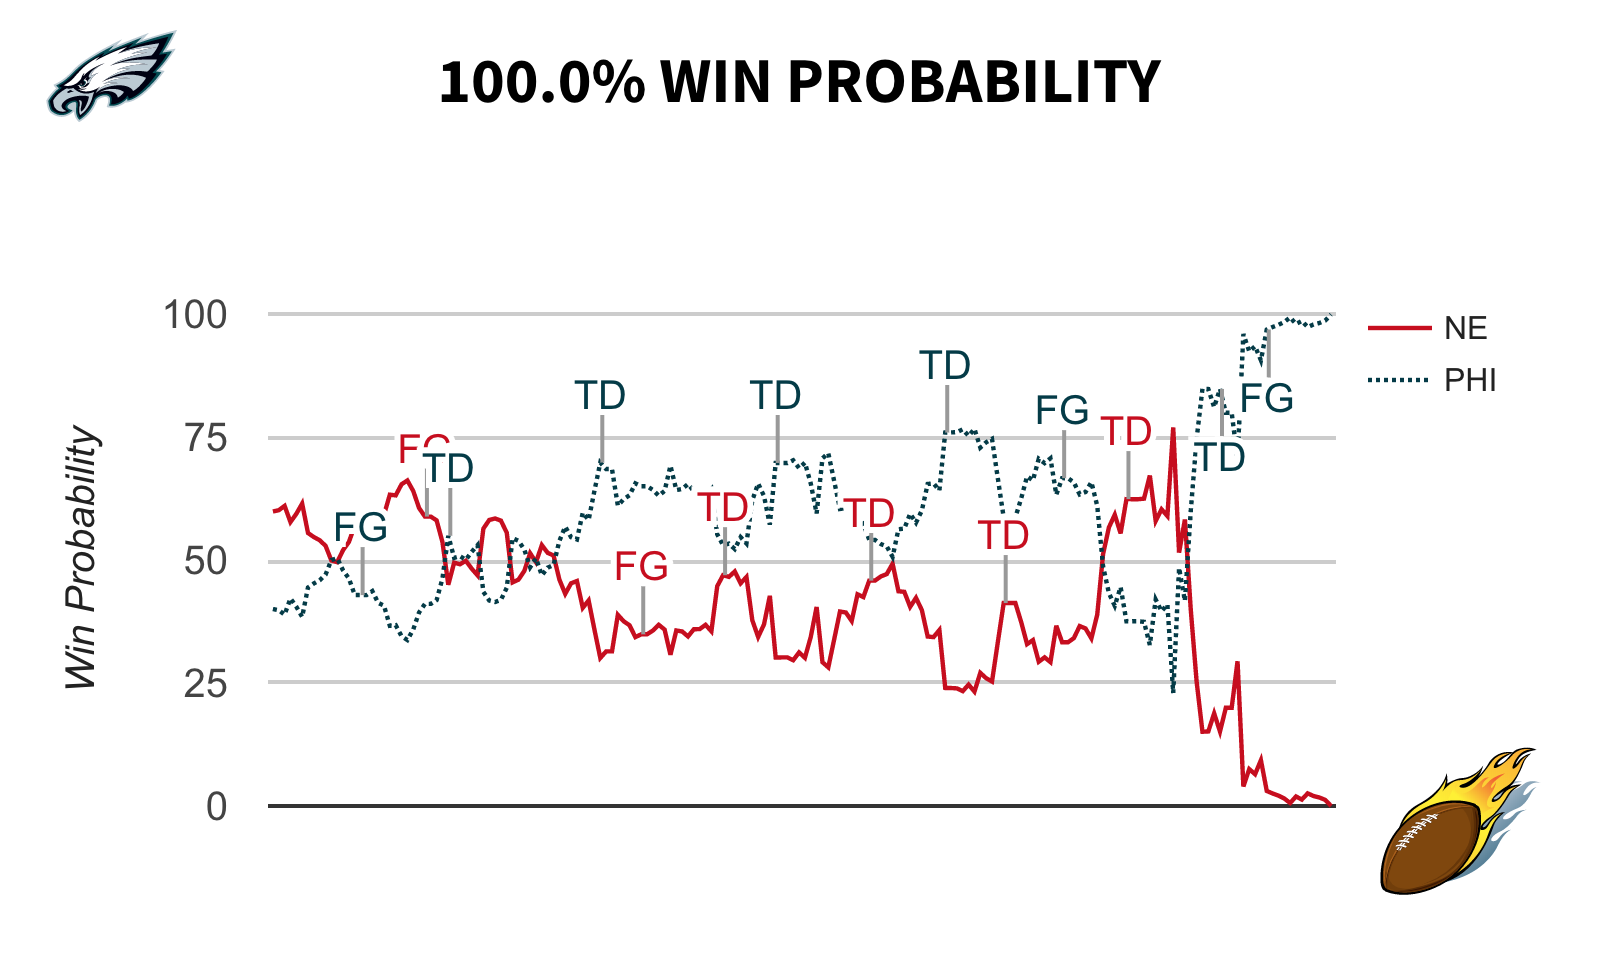 Win Expectancy Graph Super Bowl LII Philadelphia Eagles vs. New England Patriots